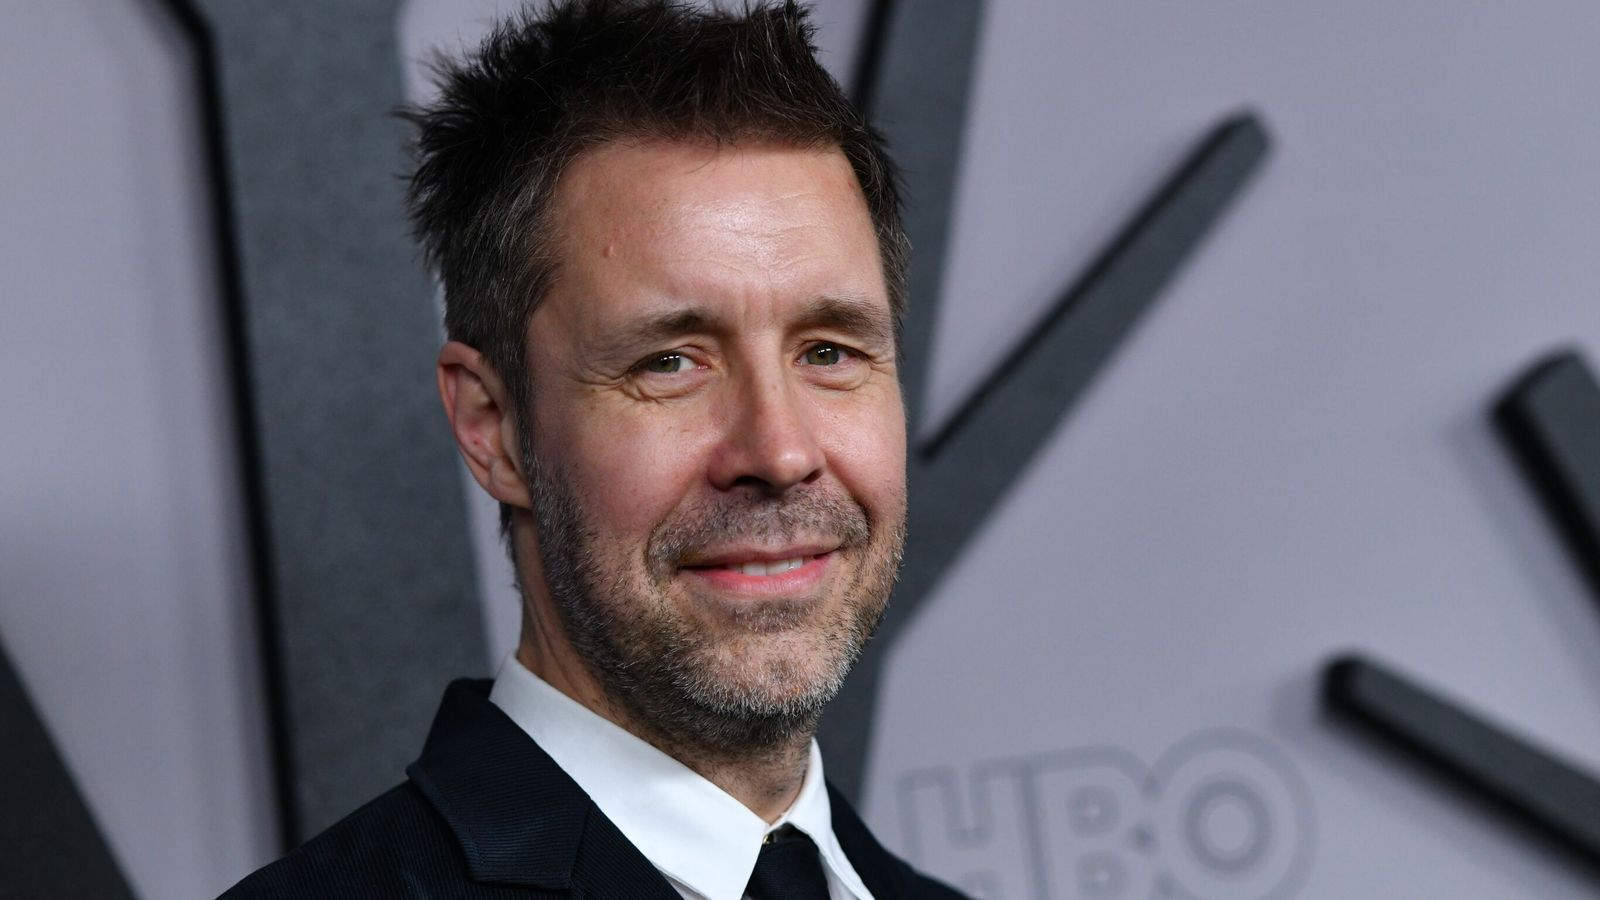 Paddy Considine cast as King Viserys Targaryen in Game Of Thrones prequel